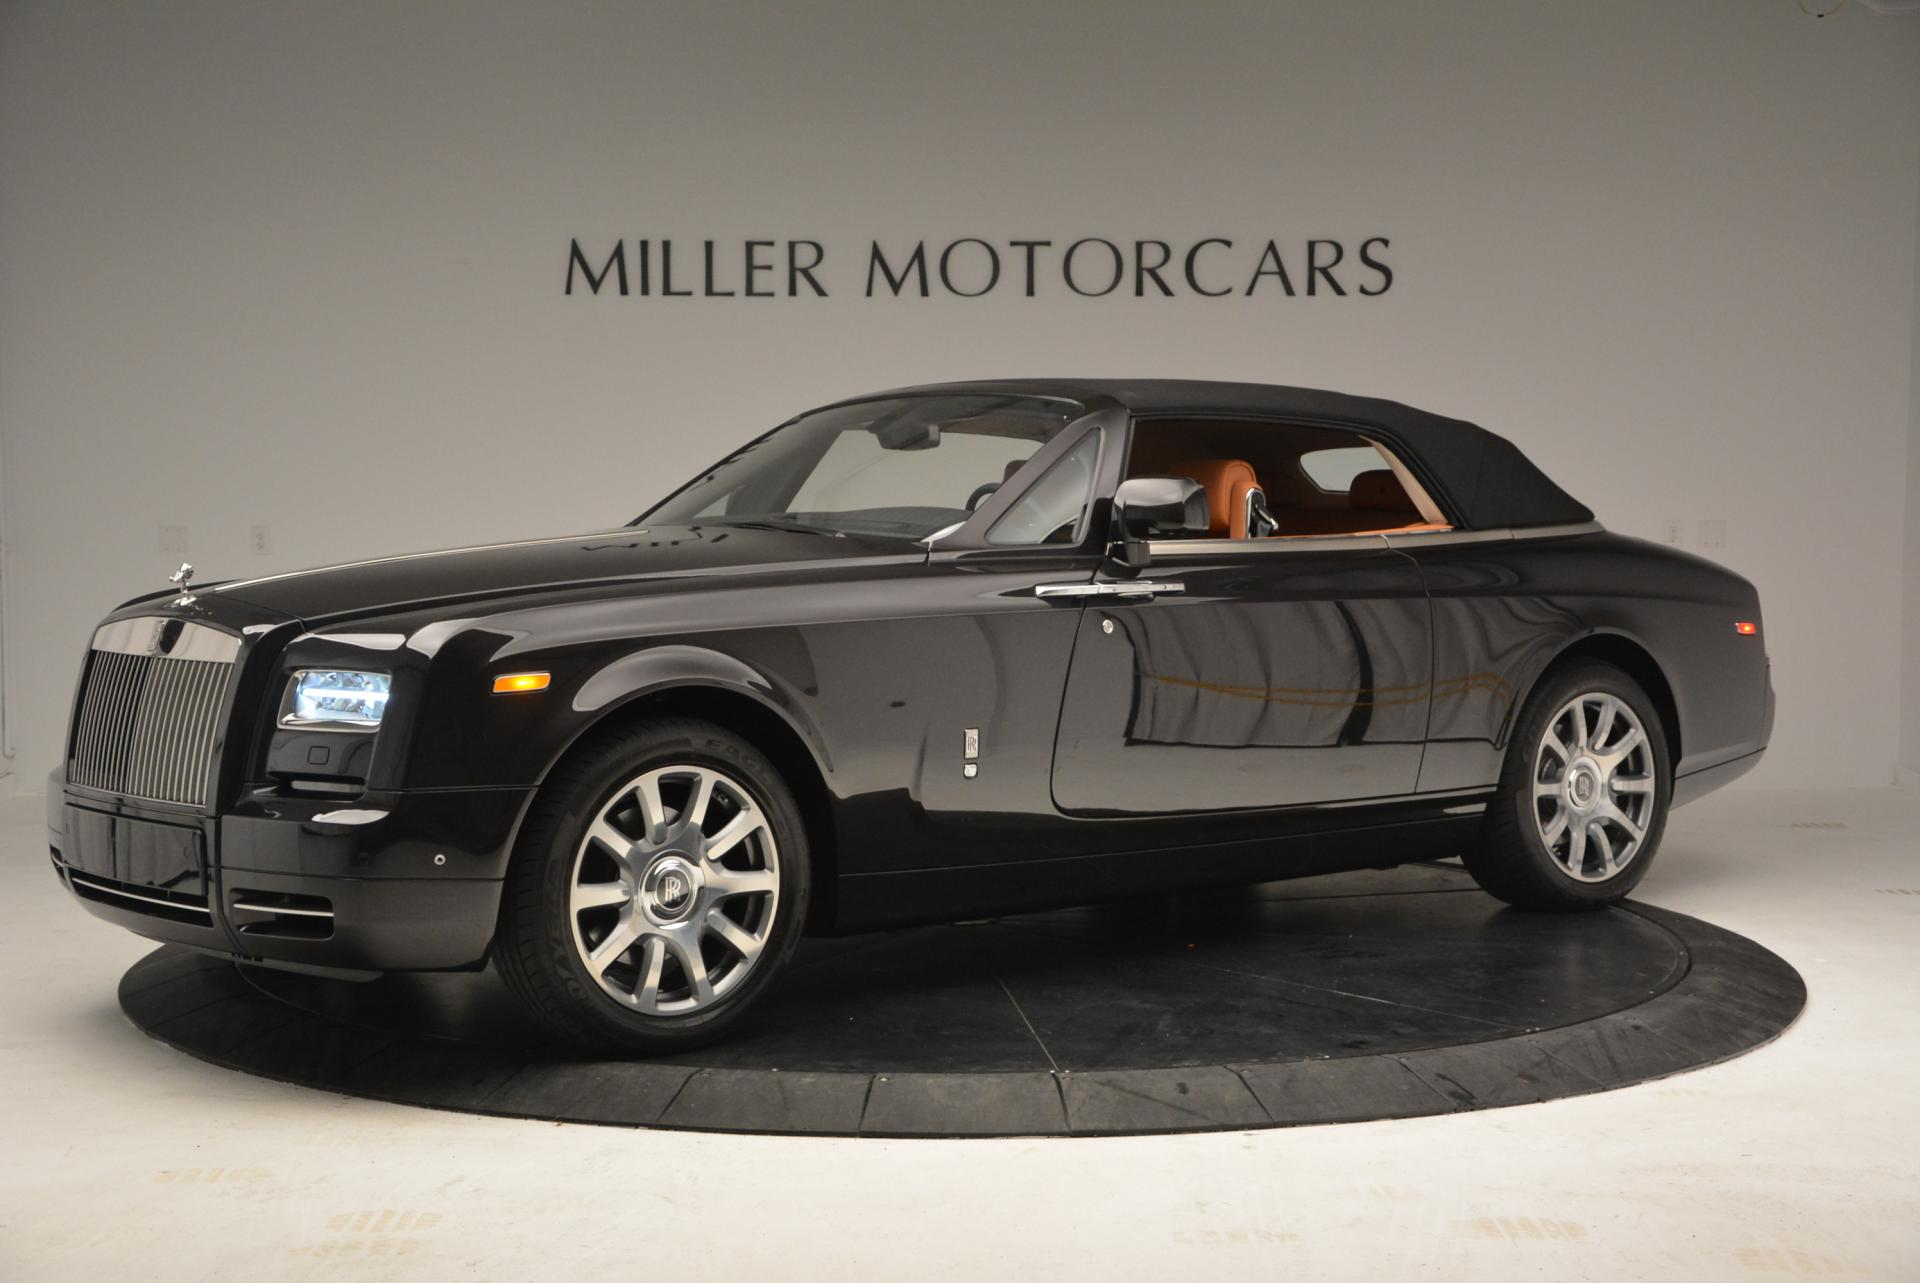 New 2016 Rolls-Royce Phantom Drophead Coupe Bespoke For Sale In Greenwich, CT 208_p13